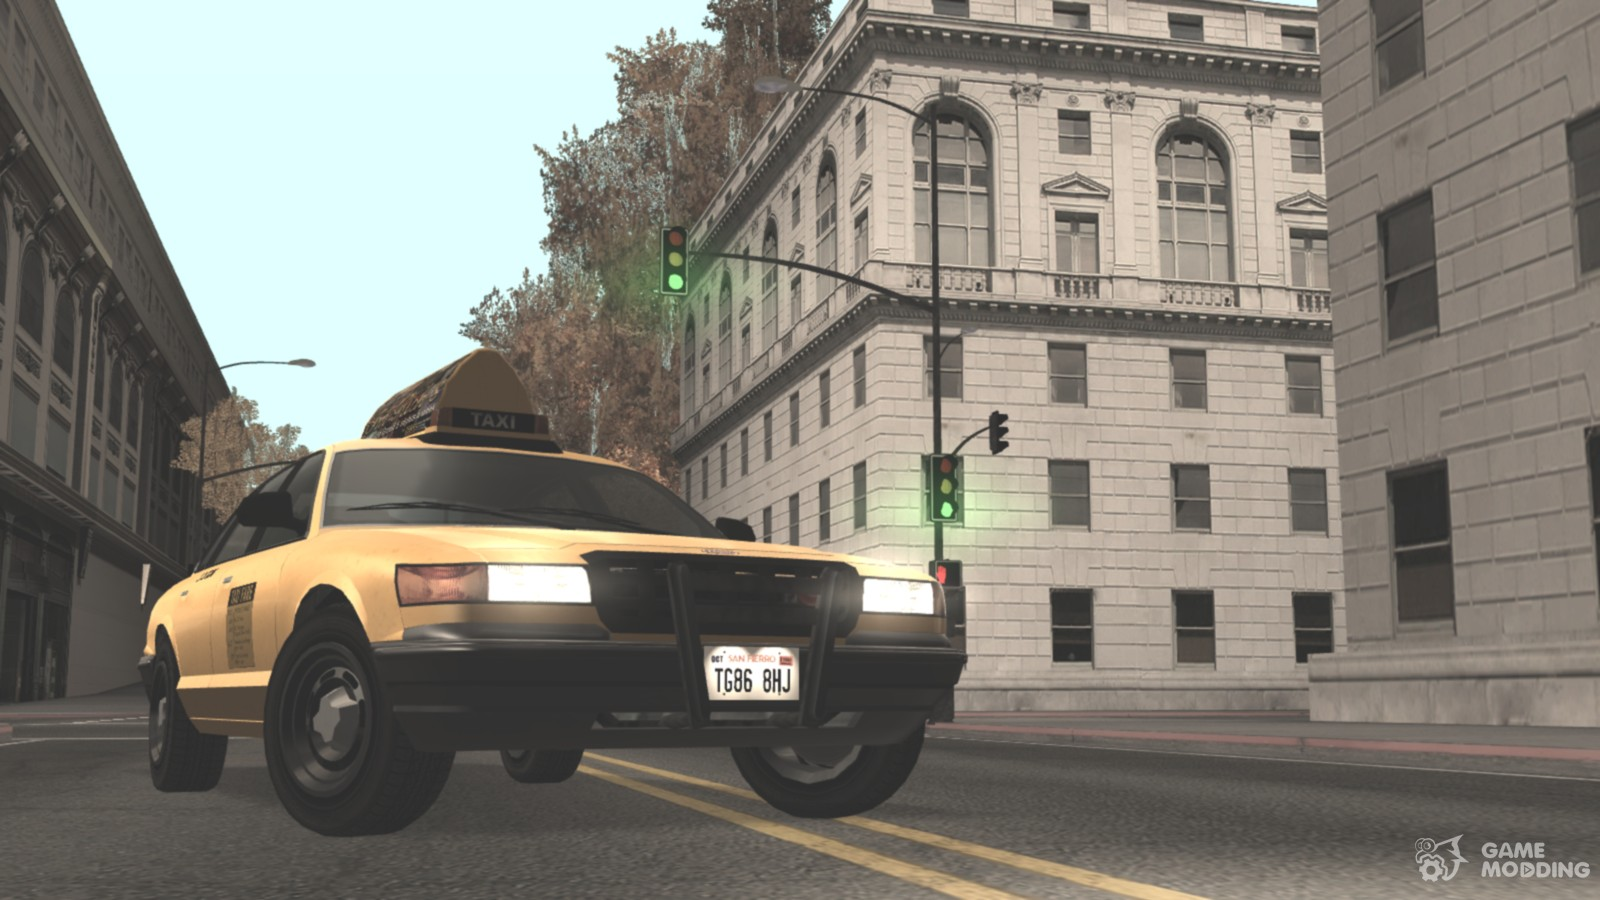 Original GTA IV Graphics Mod 6 0 (SA-MP Version) for GTA San